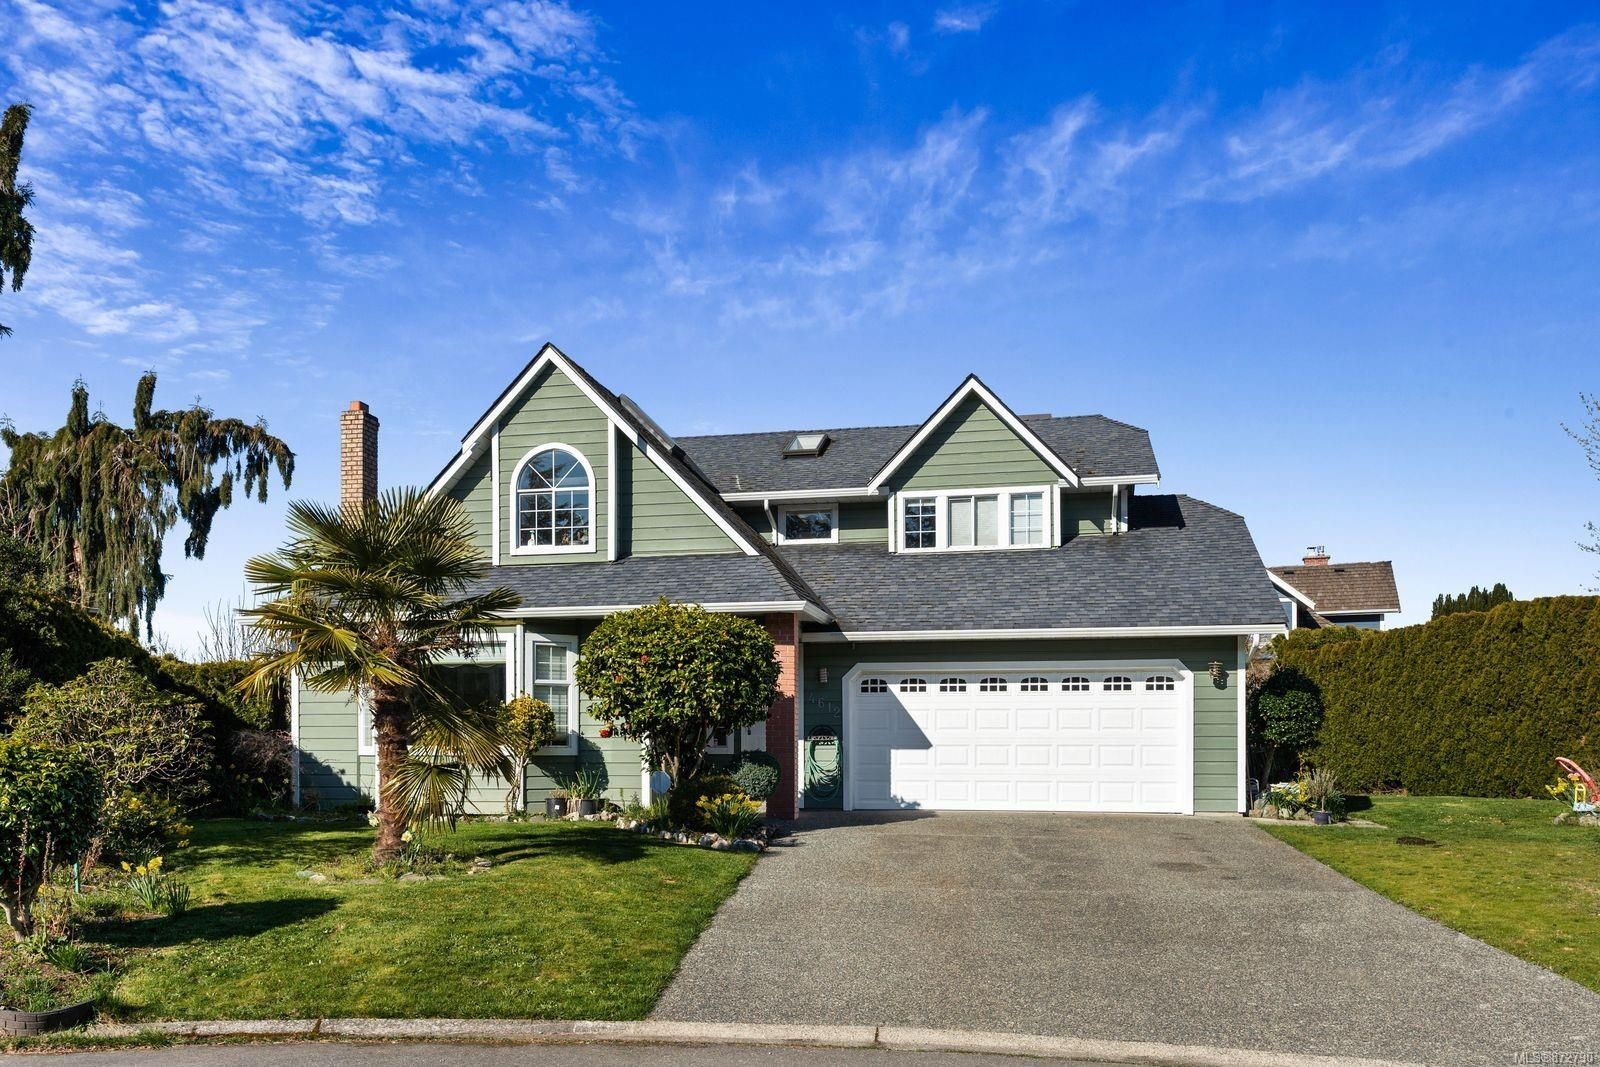 Main Photo: 4612 Royal Wood Crt in : SE Broadmead House for sale (Saanich East)  : MLS®# 872790